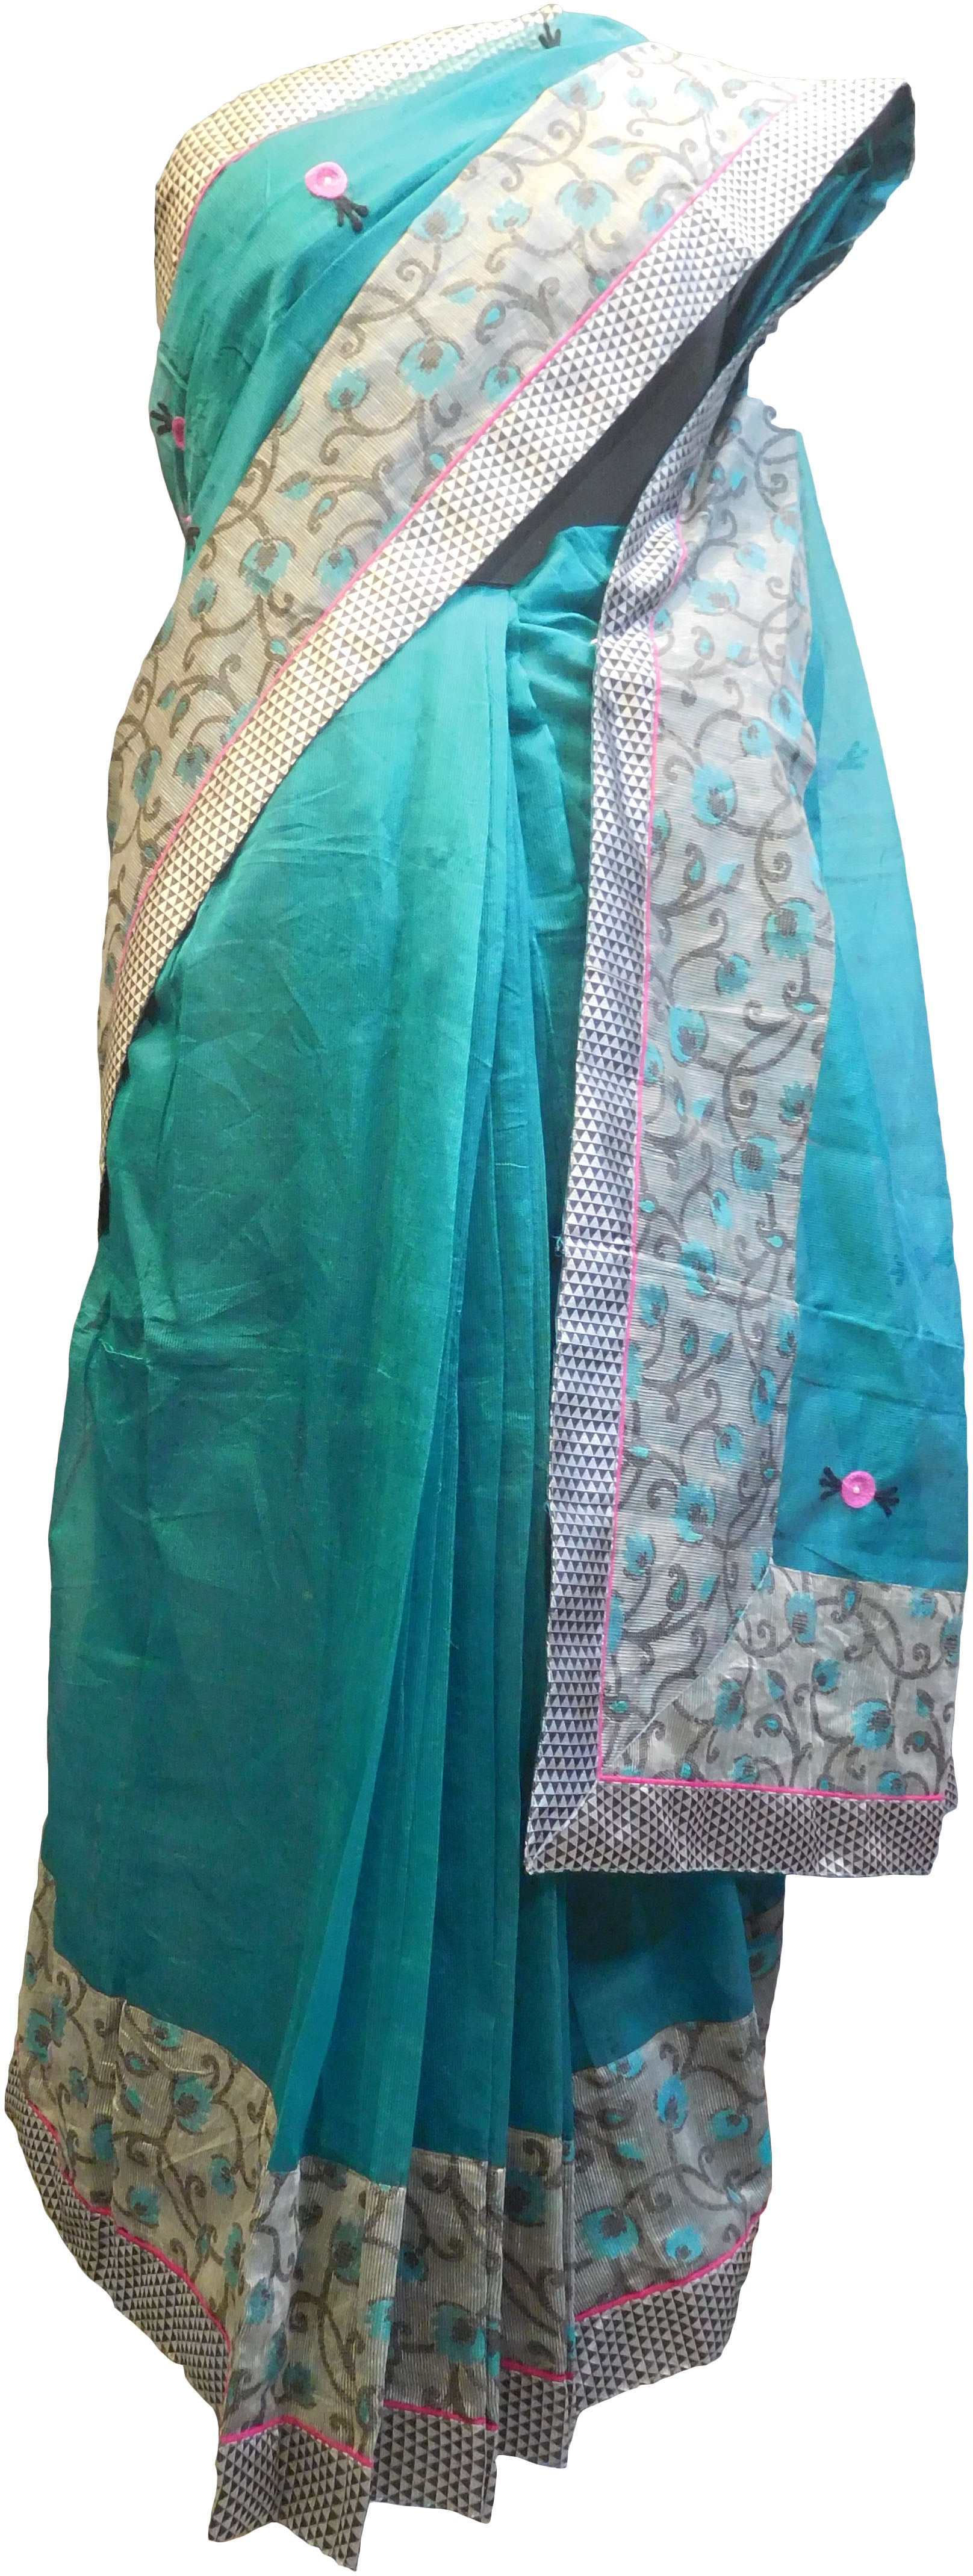 SMSAREE Turquoise Designer Wedding Partywear Supernet (Cotton) Thread & Pearl Hand Embroidery Work Bridal Saree Sari With Blouse Piece F105